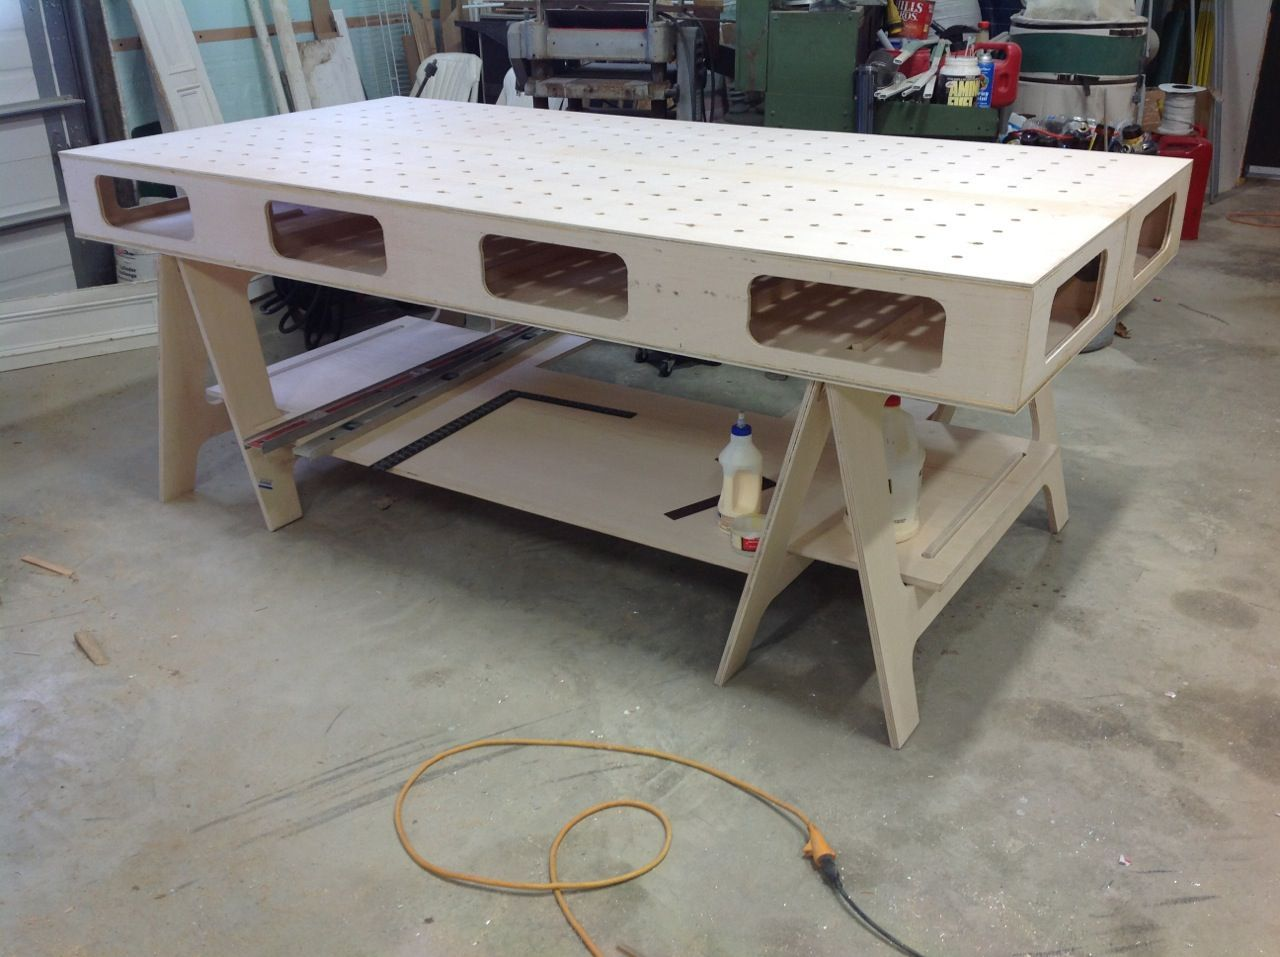 Want Fast Access To Great Ideas On Woodworking? Check This